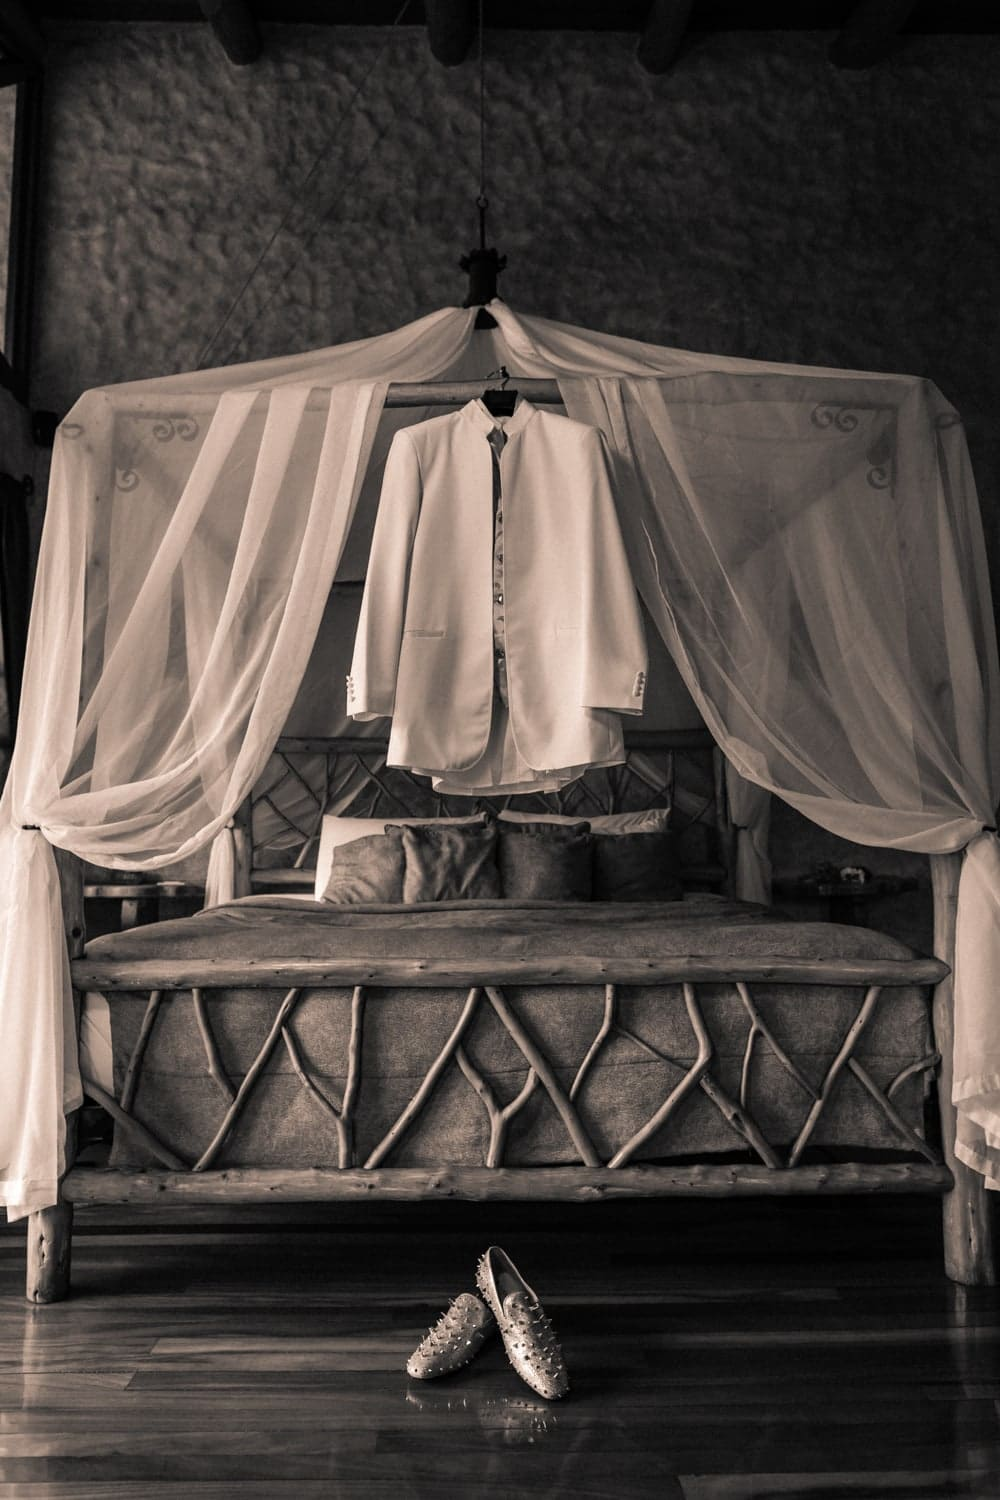 Grooms wedding day attire hanging on canopy bed.